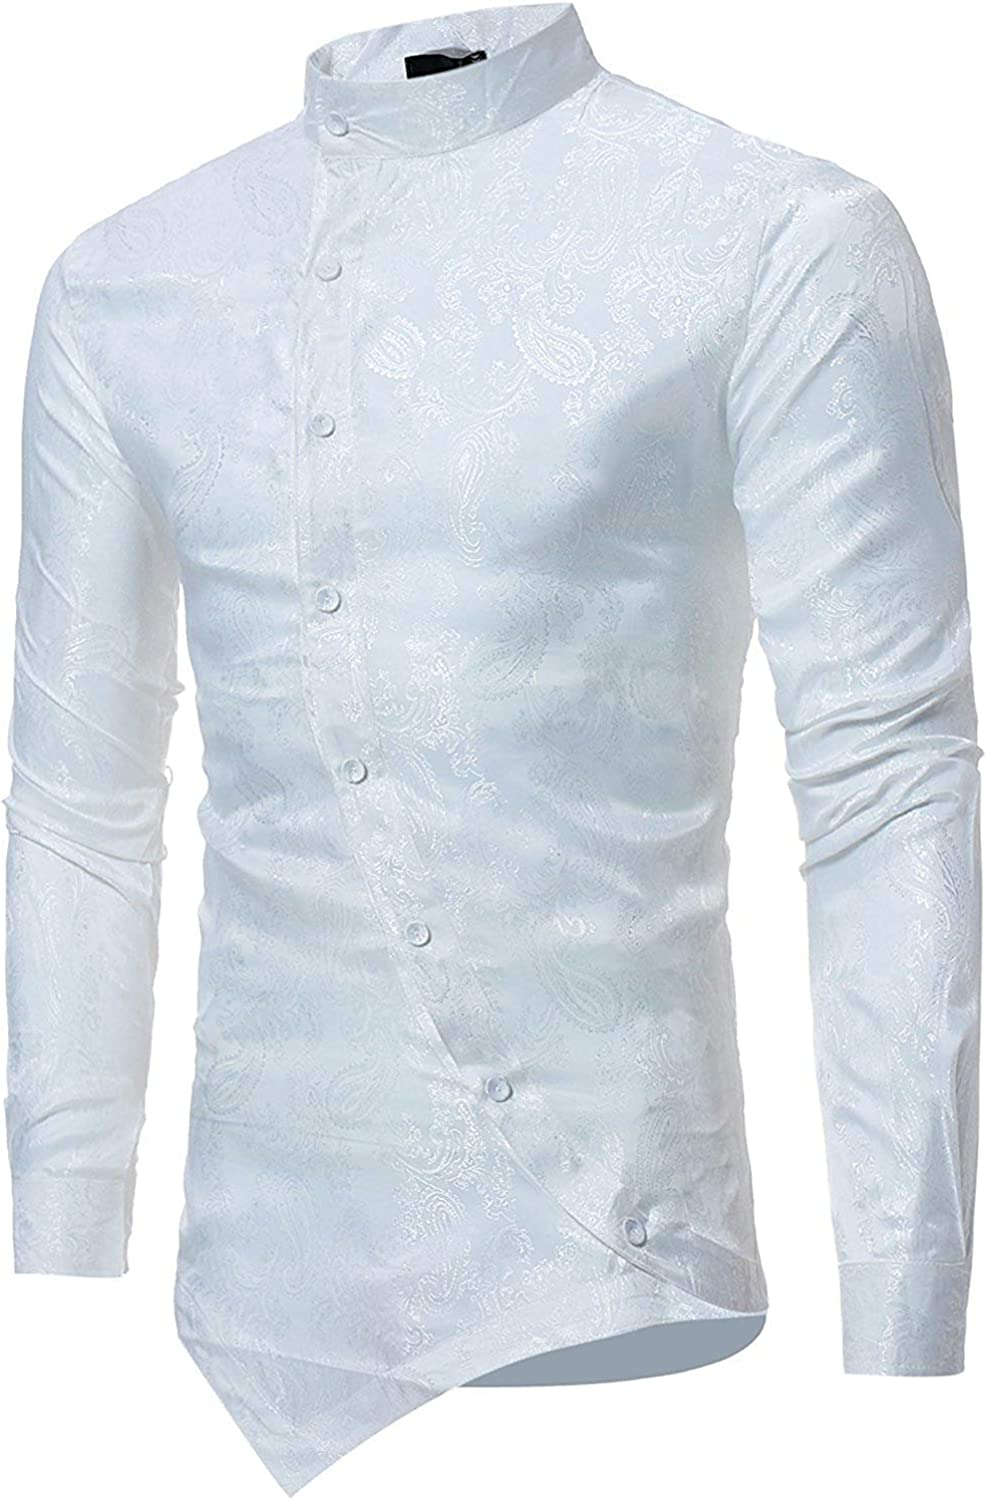 LYLIFE Mens Hipster Skull Design Slim Fit Long Sleeve Casual Button Down Dress Shirts